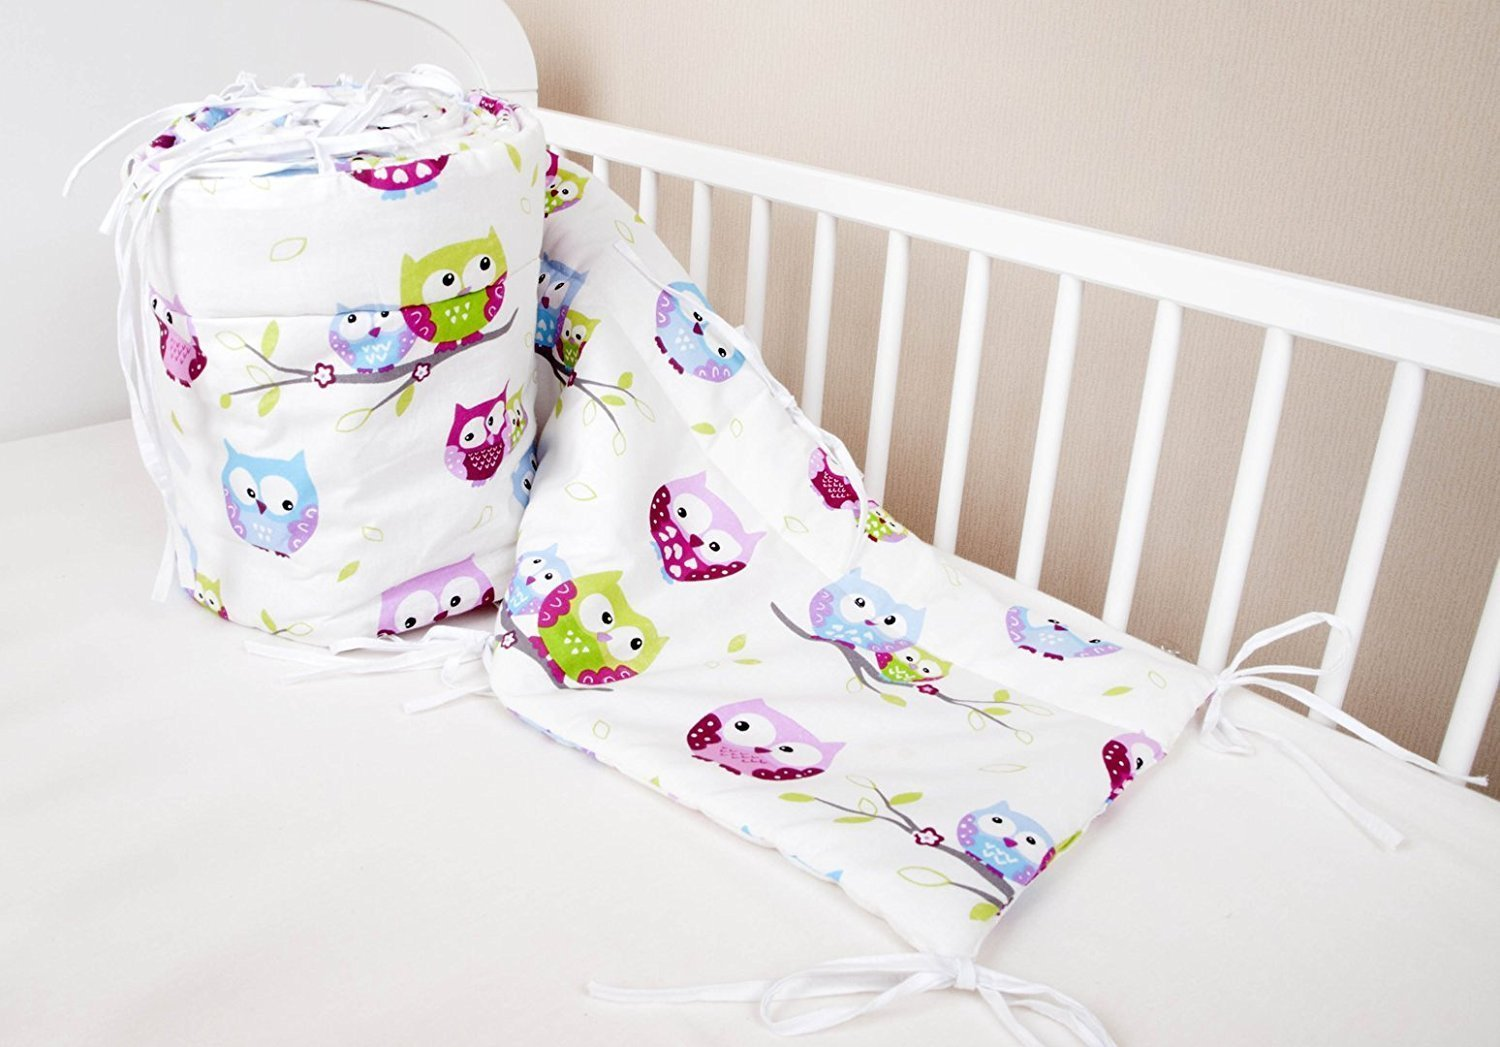 Amilian® Baby Cot Bumper Wrap Around Protection For Baby's Bed With Head Guard 100% hypo-Allergenic 100% Cotton Breathable and non-toxic materials Anti-allergic Baby Owl Print White/Multi-Coloured Available In 3 Sizes (420 cm x 30 cm) (360 cm 30 cm) (180